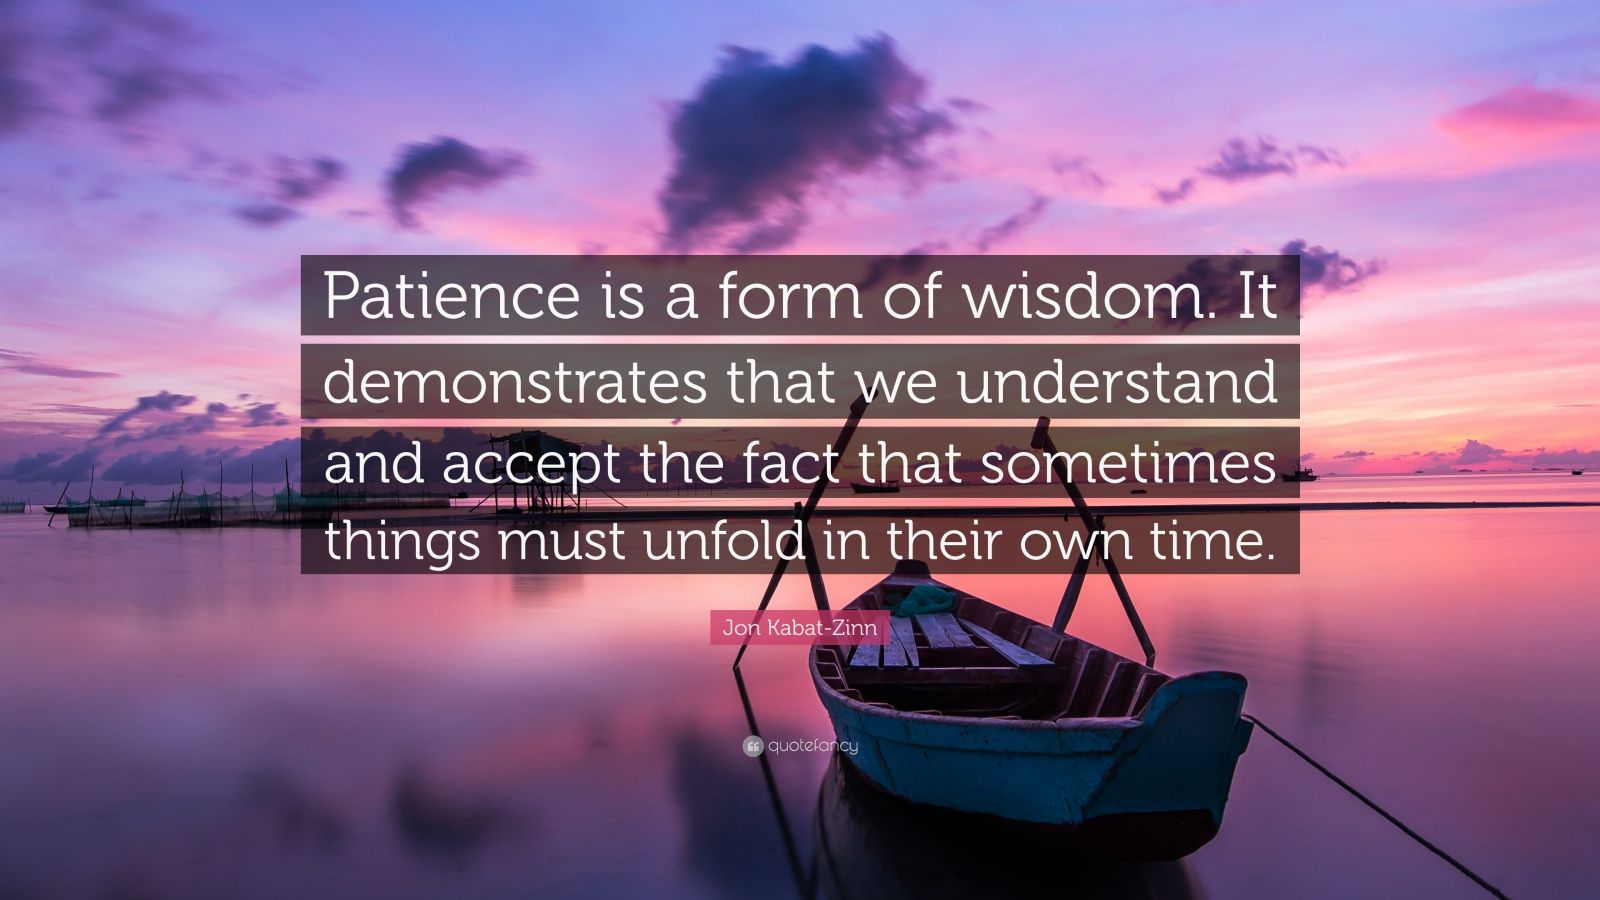 """Jon Kabat-Zinn Quote: """"Patience is a form of wisdom. It demonstrates that we understand and accept the fact that sometimes things must unfold in their own time."""""""